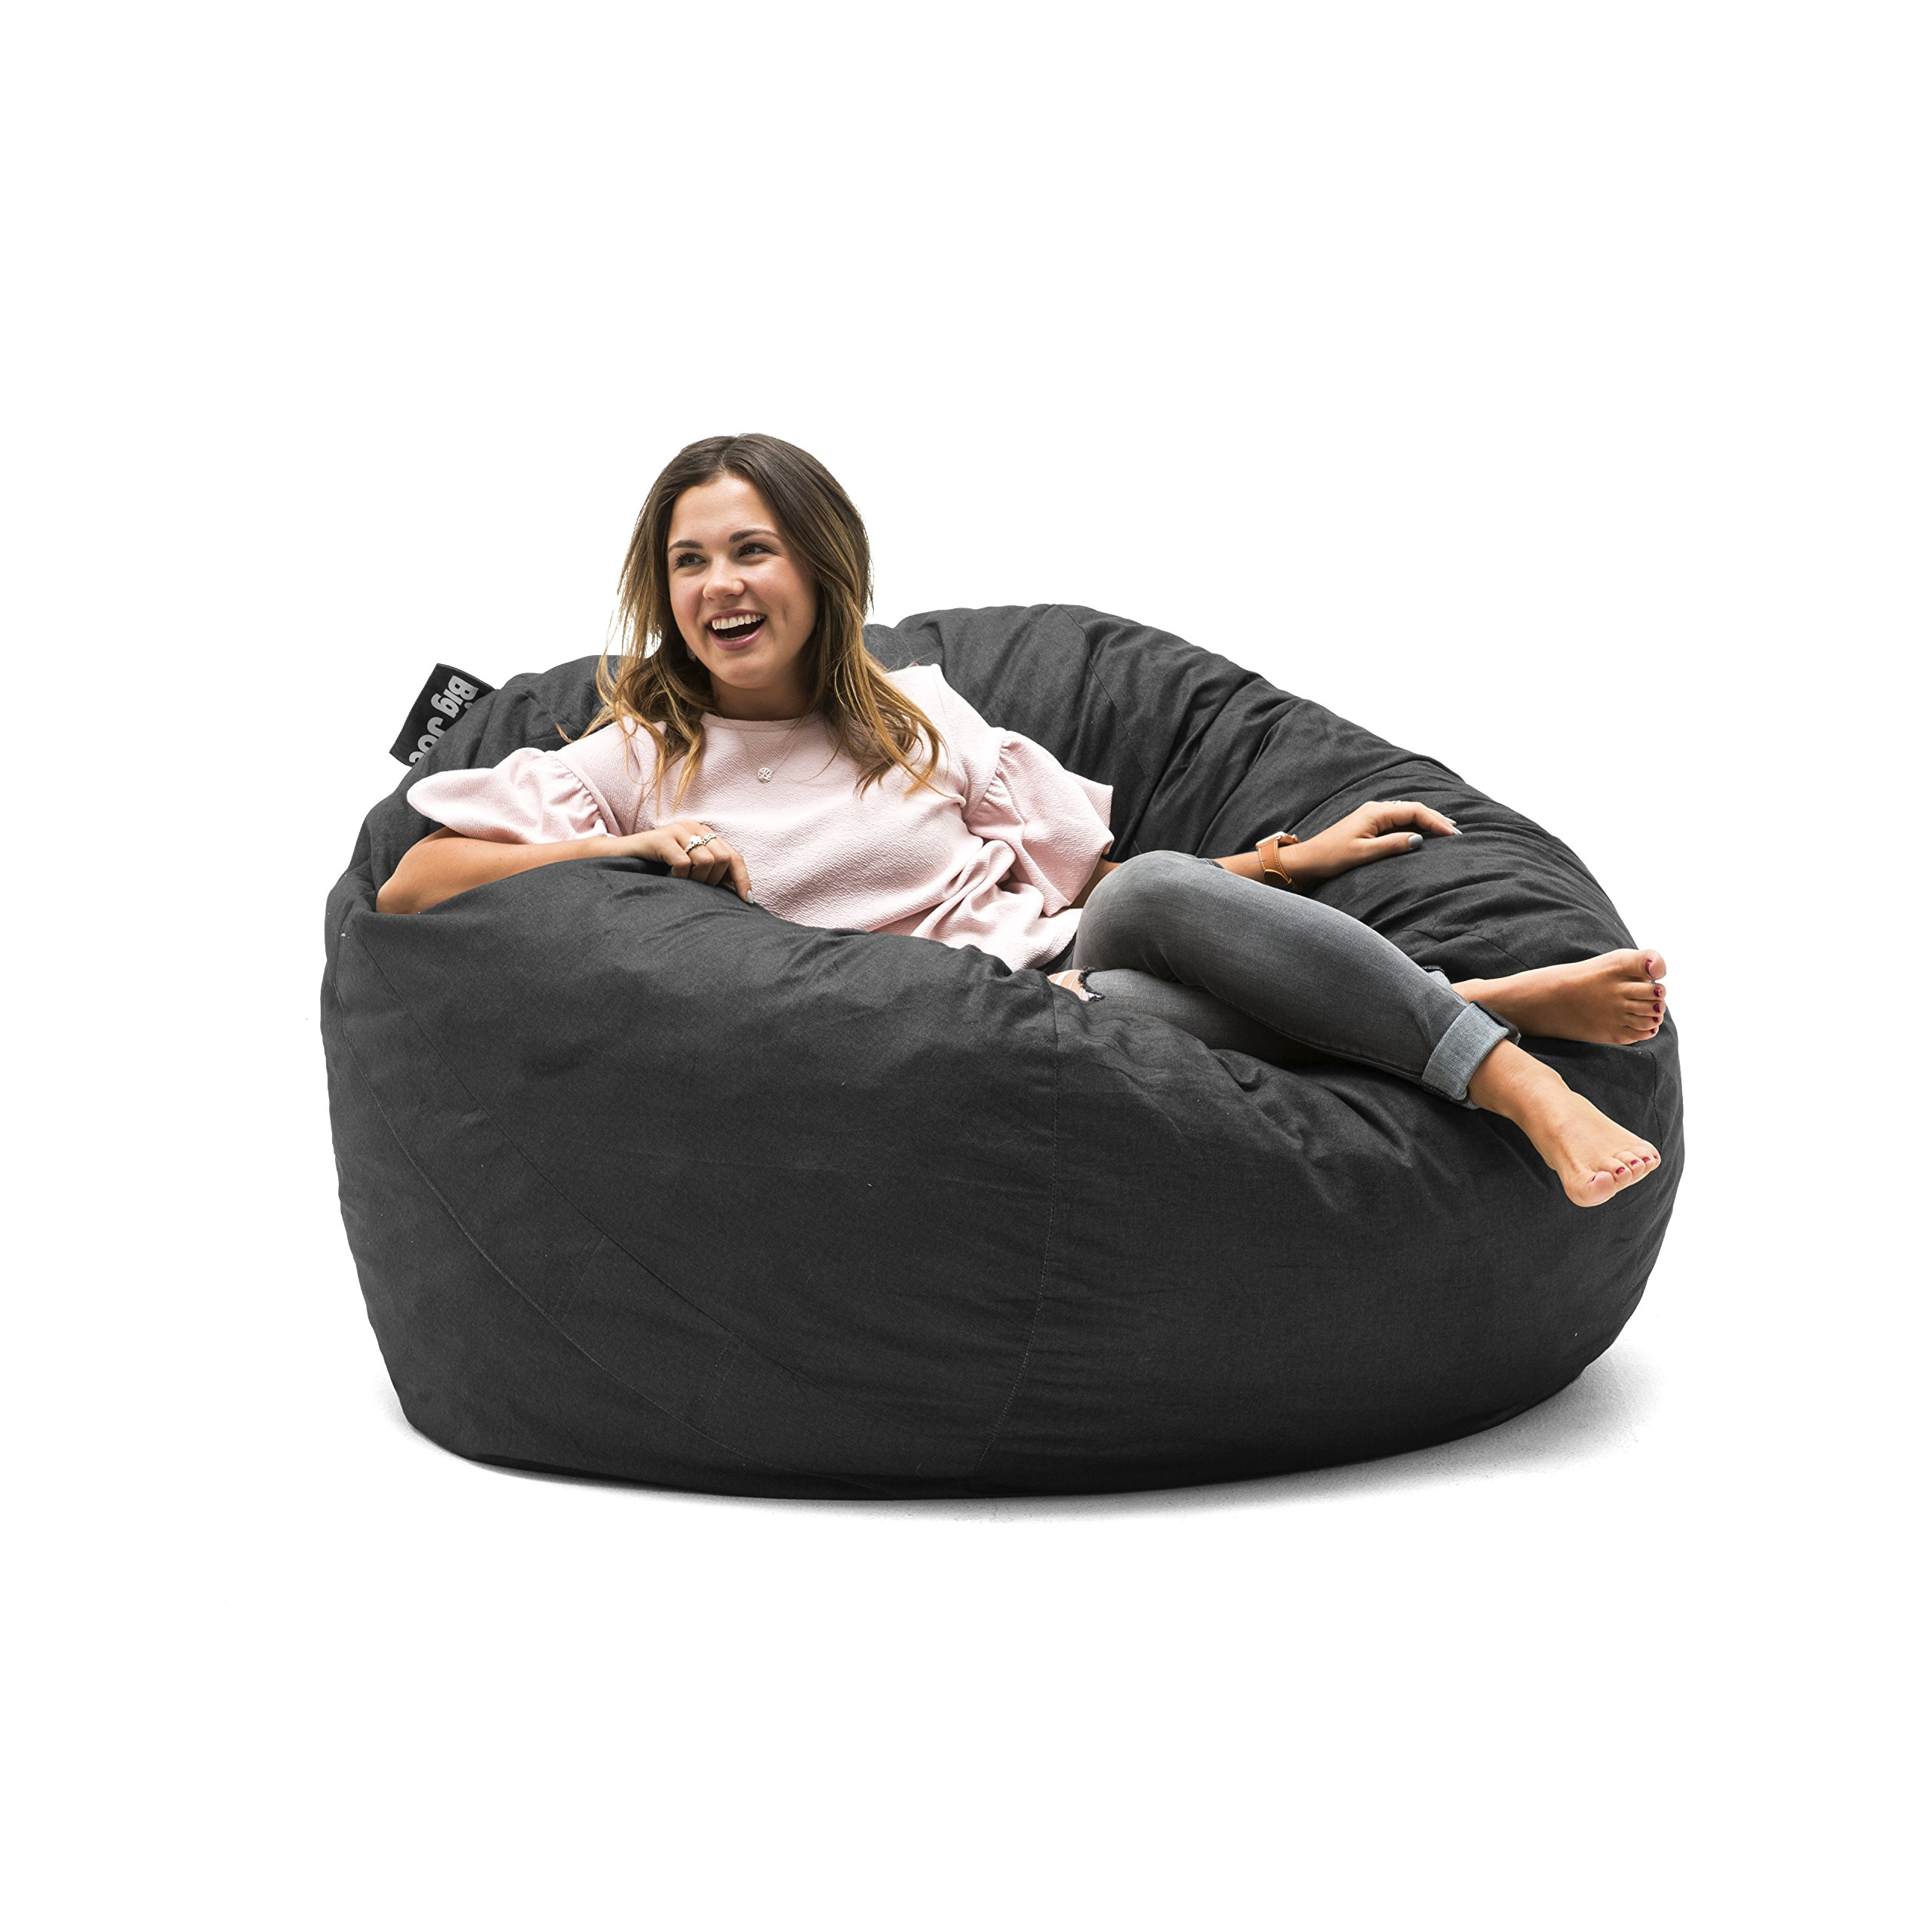 Big Joe 0010655LDS, Black Large Fuf with Removable Washable Cover, Lenox by Big Joe